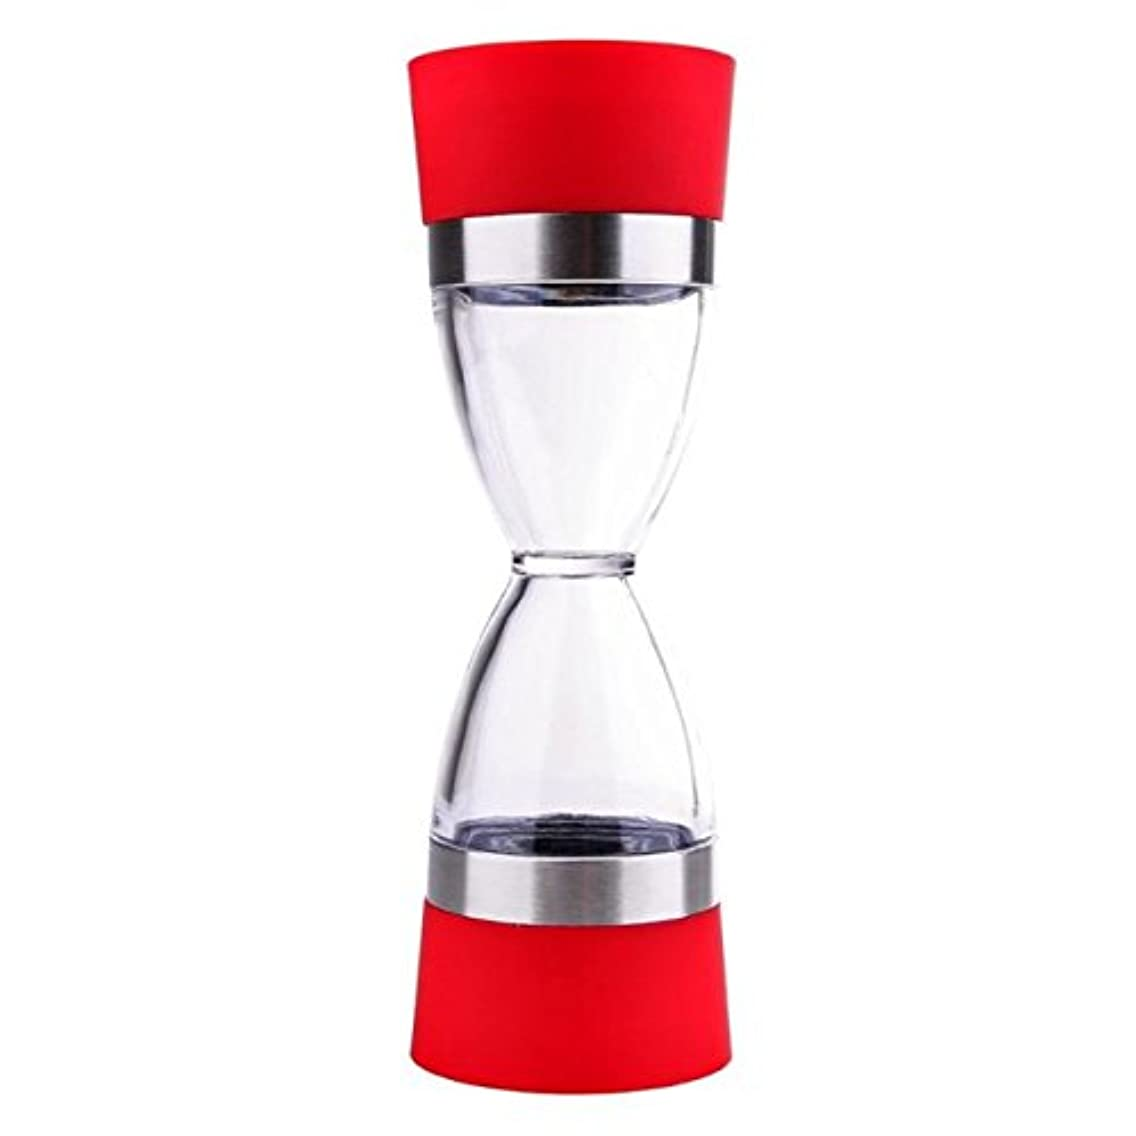 2 in 1 Hourglass Shape 18cm Manual Spice Grinder Dual Pepper Tools Shaker Kitchen Clean to Easy Salt for Pepper Mill Cooking